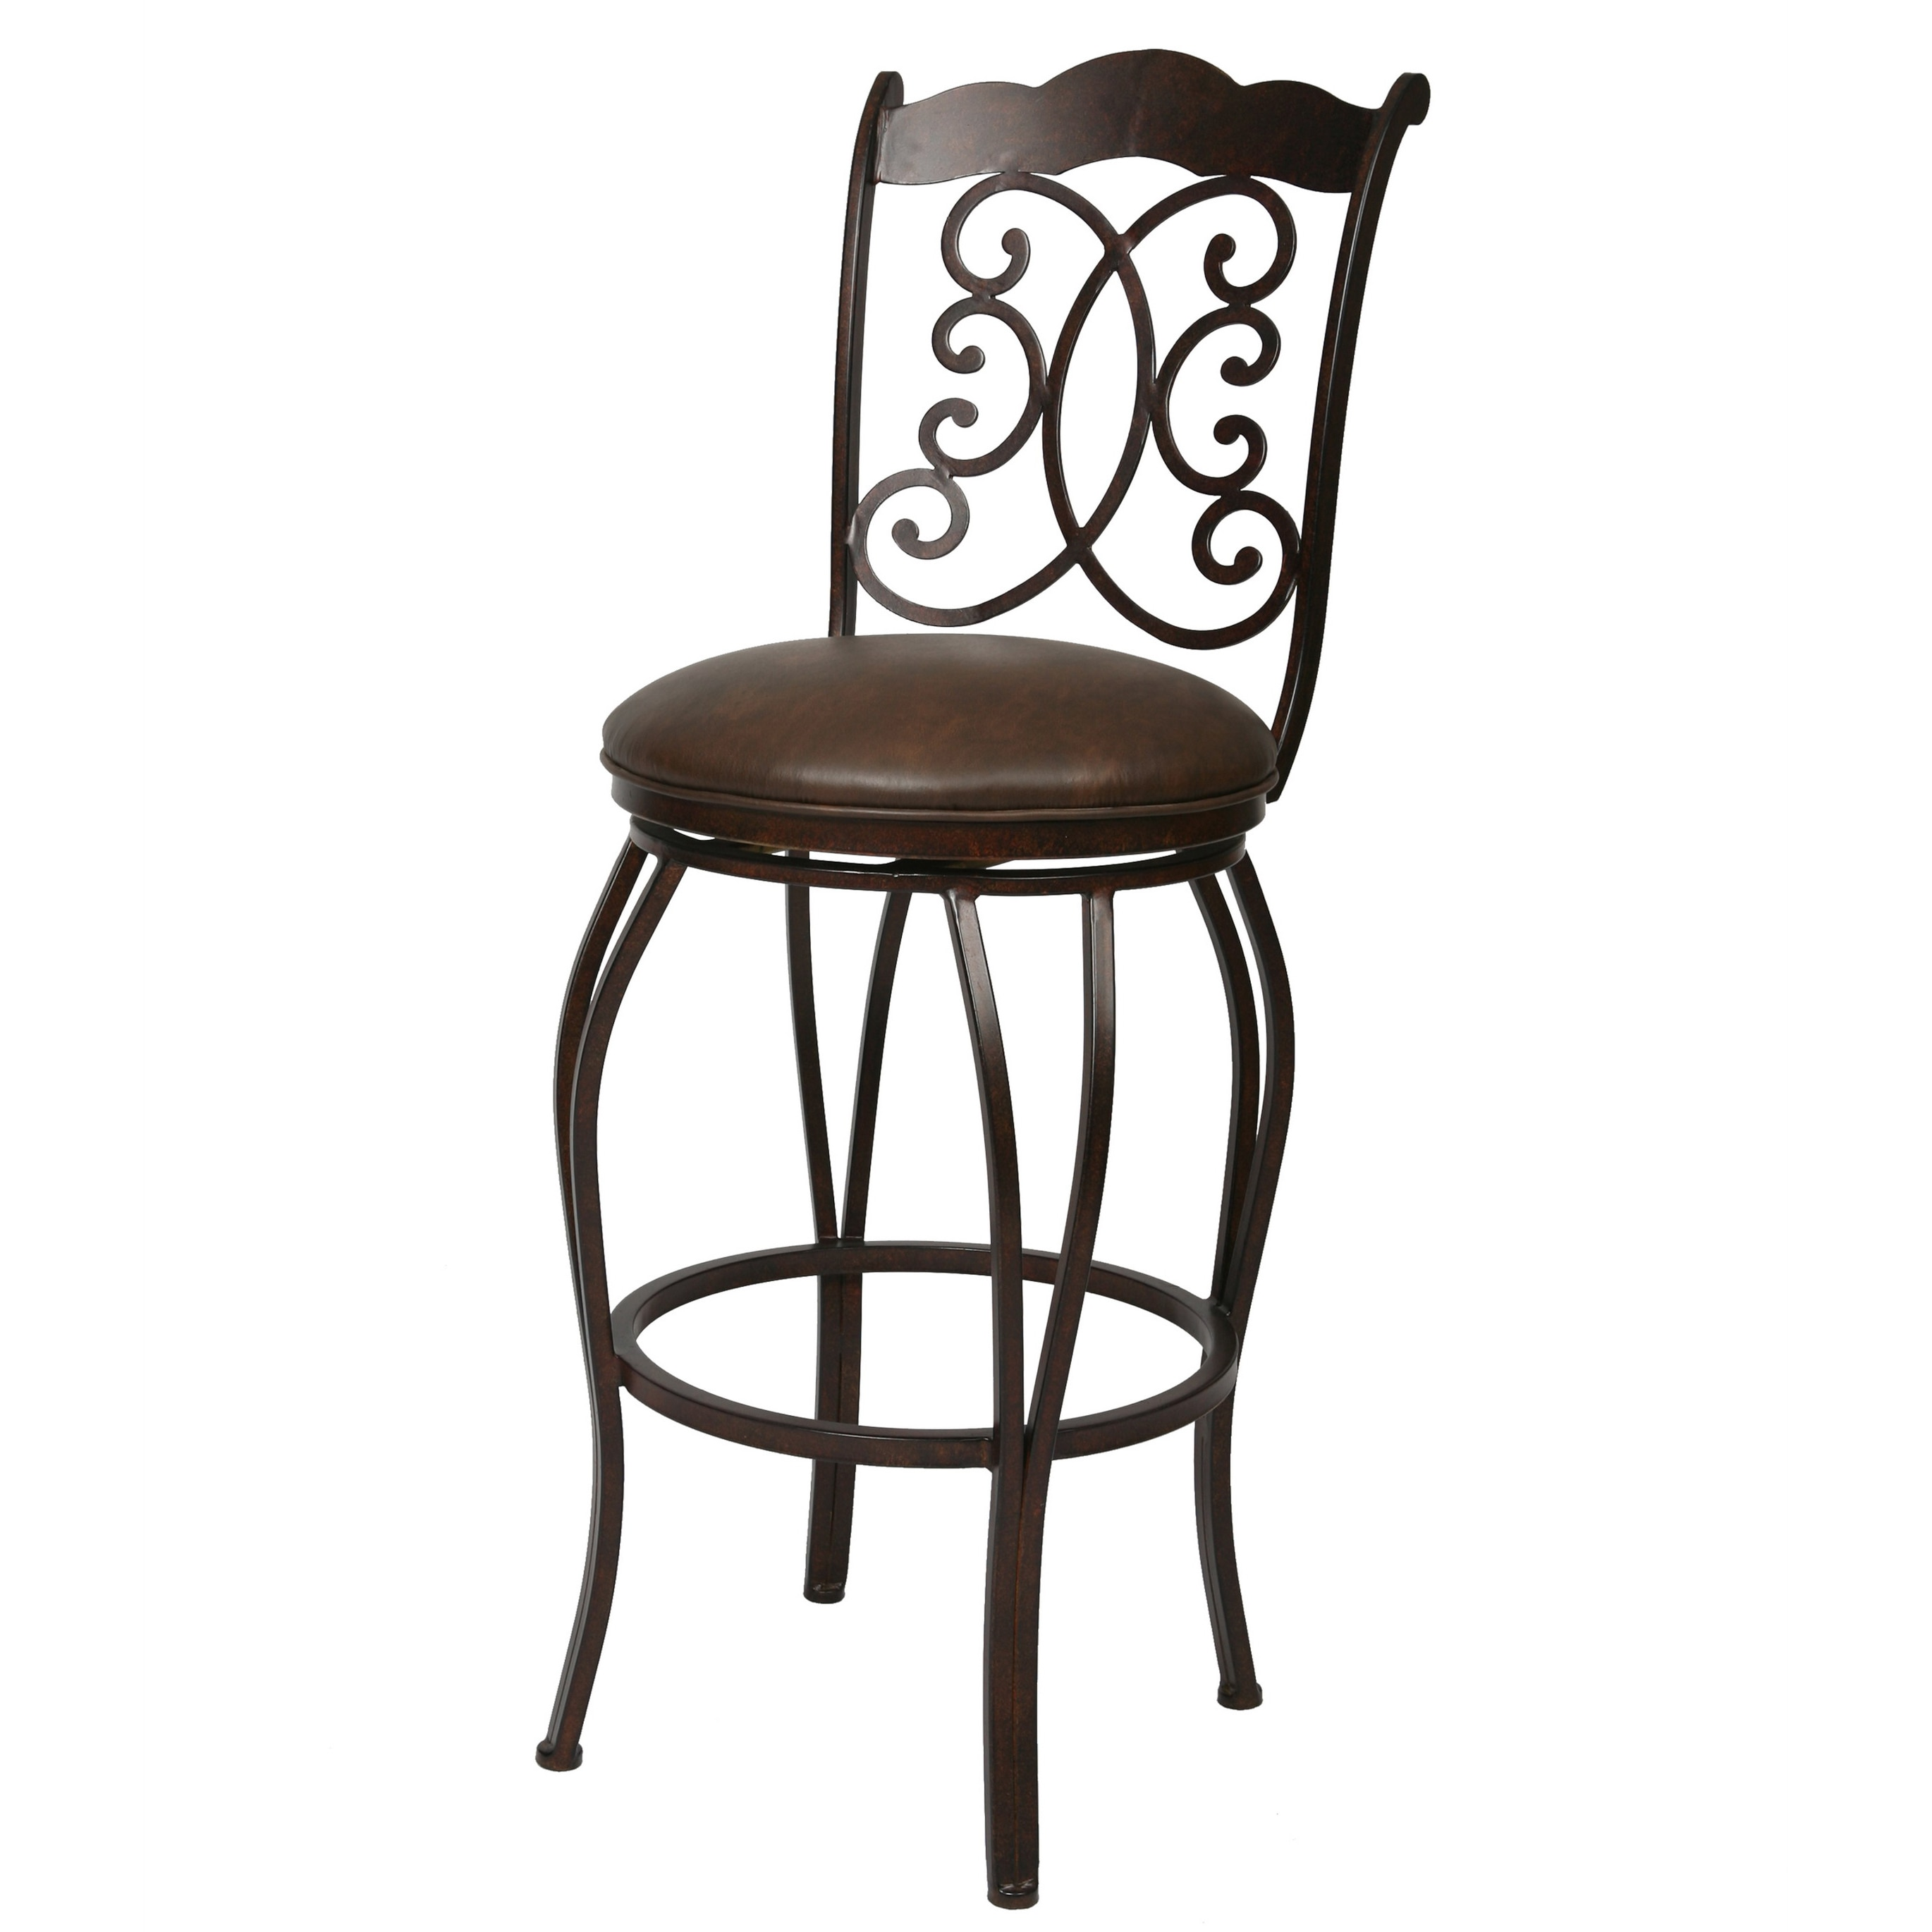 26 inch Swivel Counter Stool Dining Room Bar Modern  : Athena 26 inch Swivel Counter Stool L14257186 from www.ebay.com size 2740 x 2740 jpeg 214kB